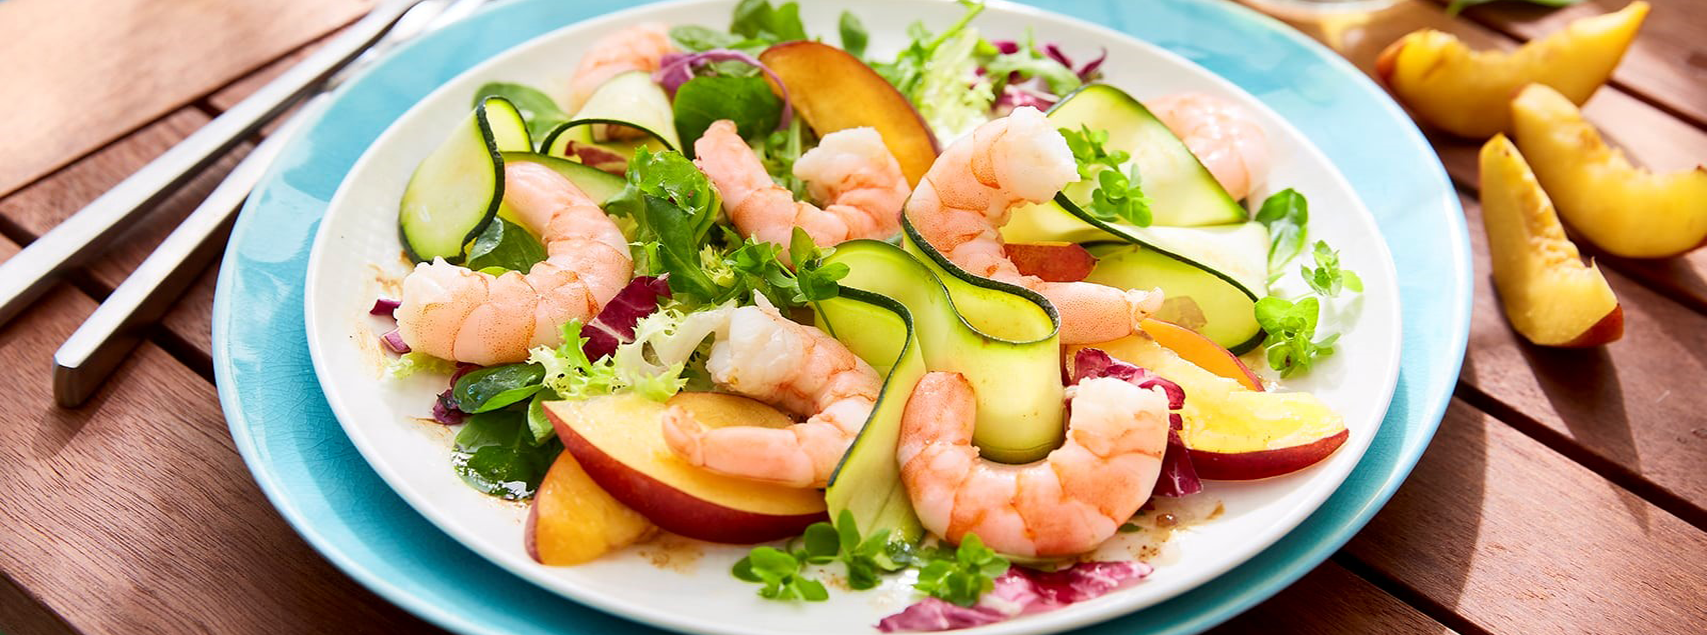 Sommerlicher Nektarinen-Shrimps-Salat